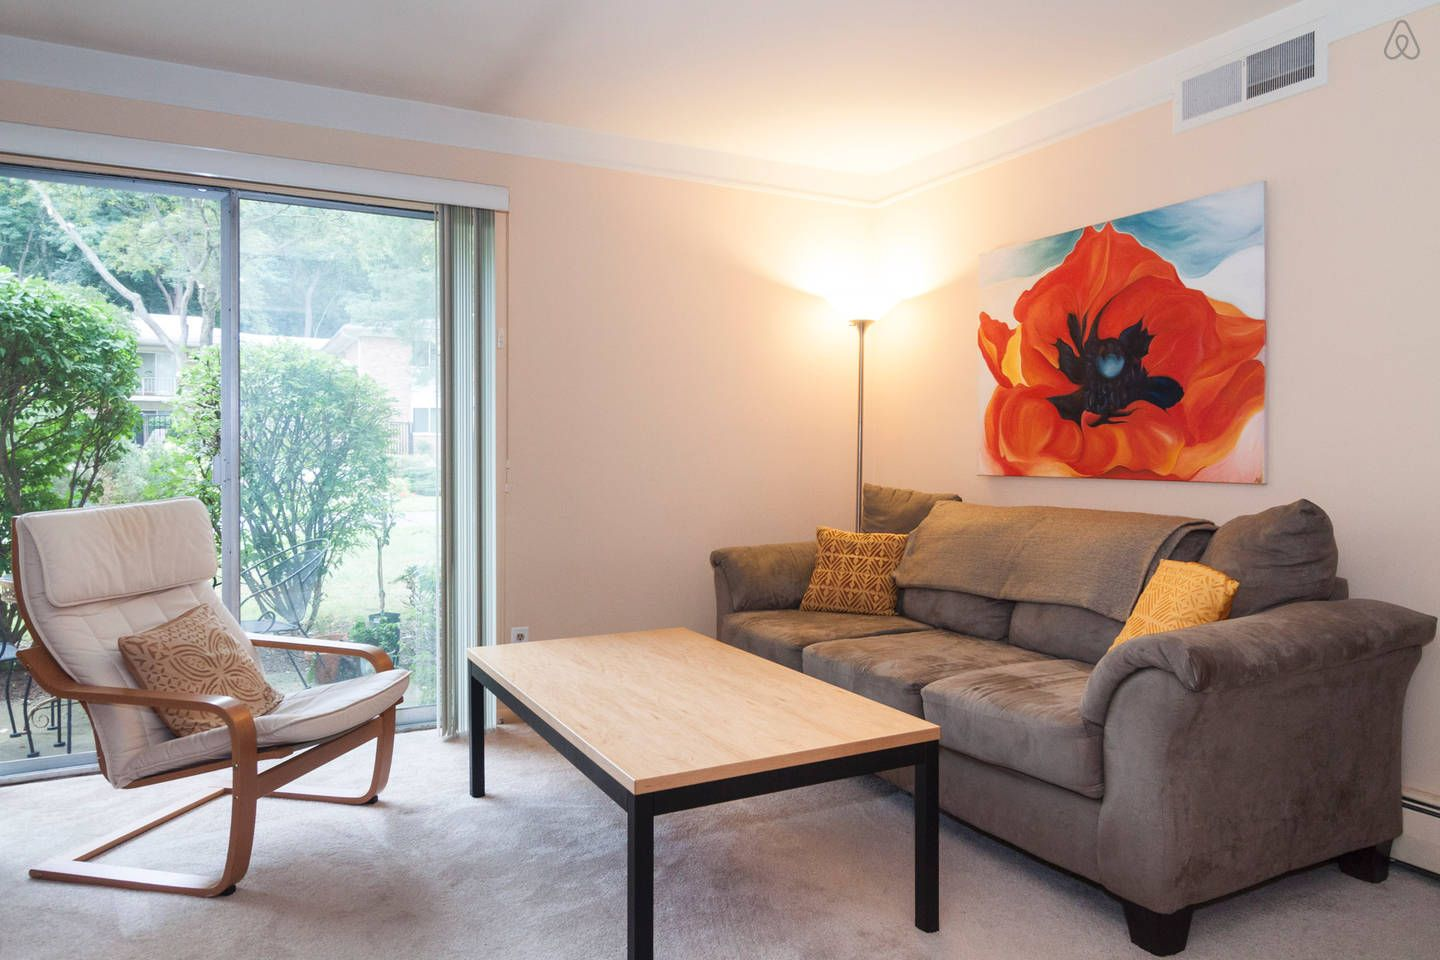 Home in the Woods near Downtown - vacation rental in Ann Arbor, Michigan. View more: #AnnArborMichiganVacationRentals